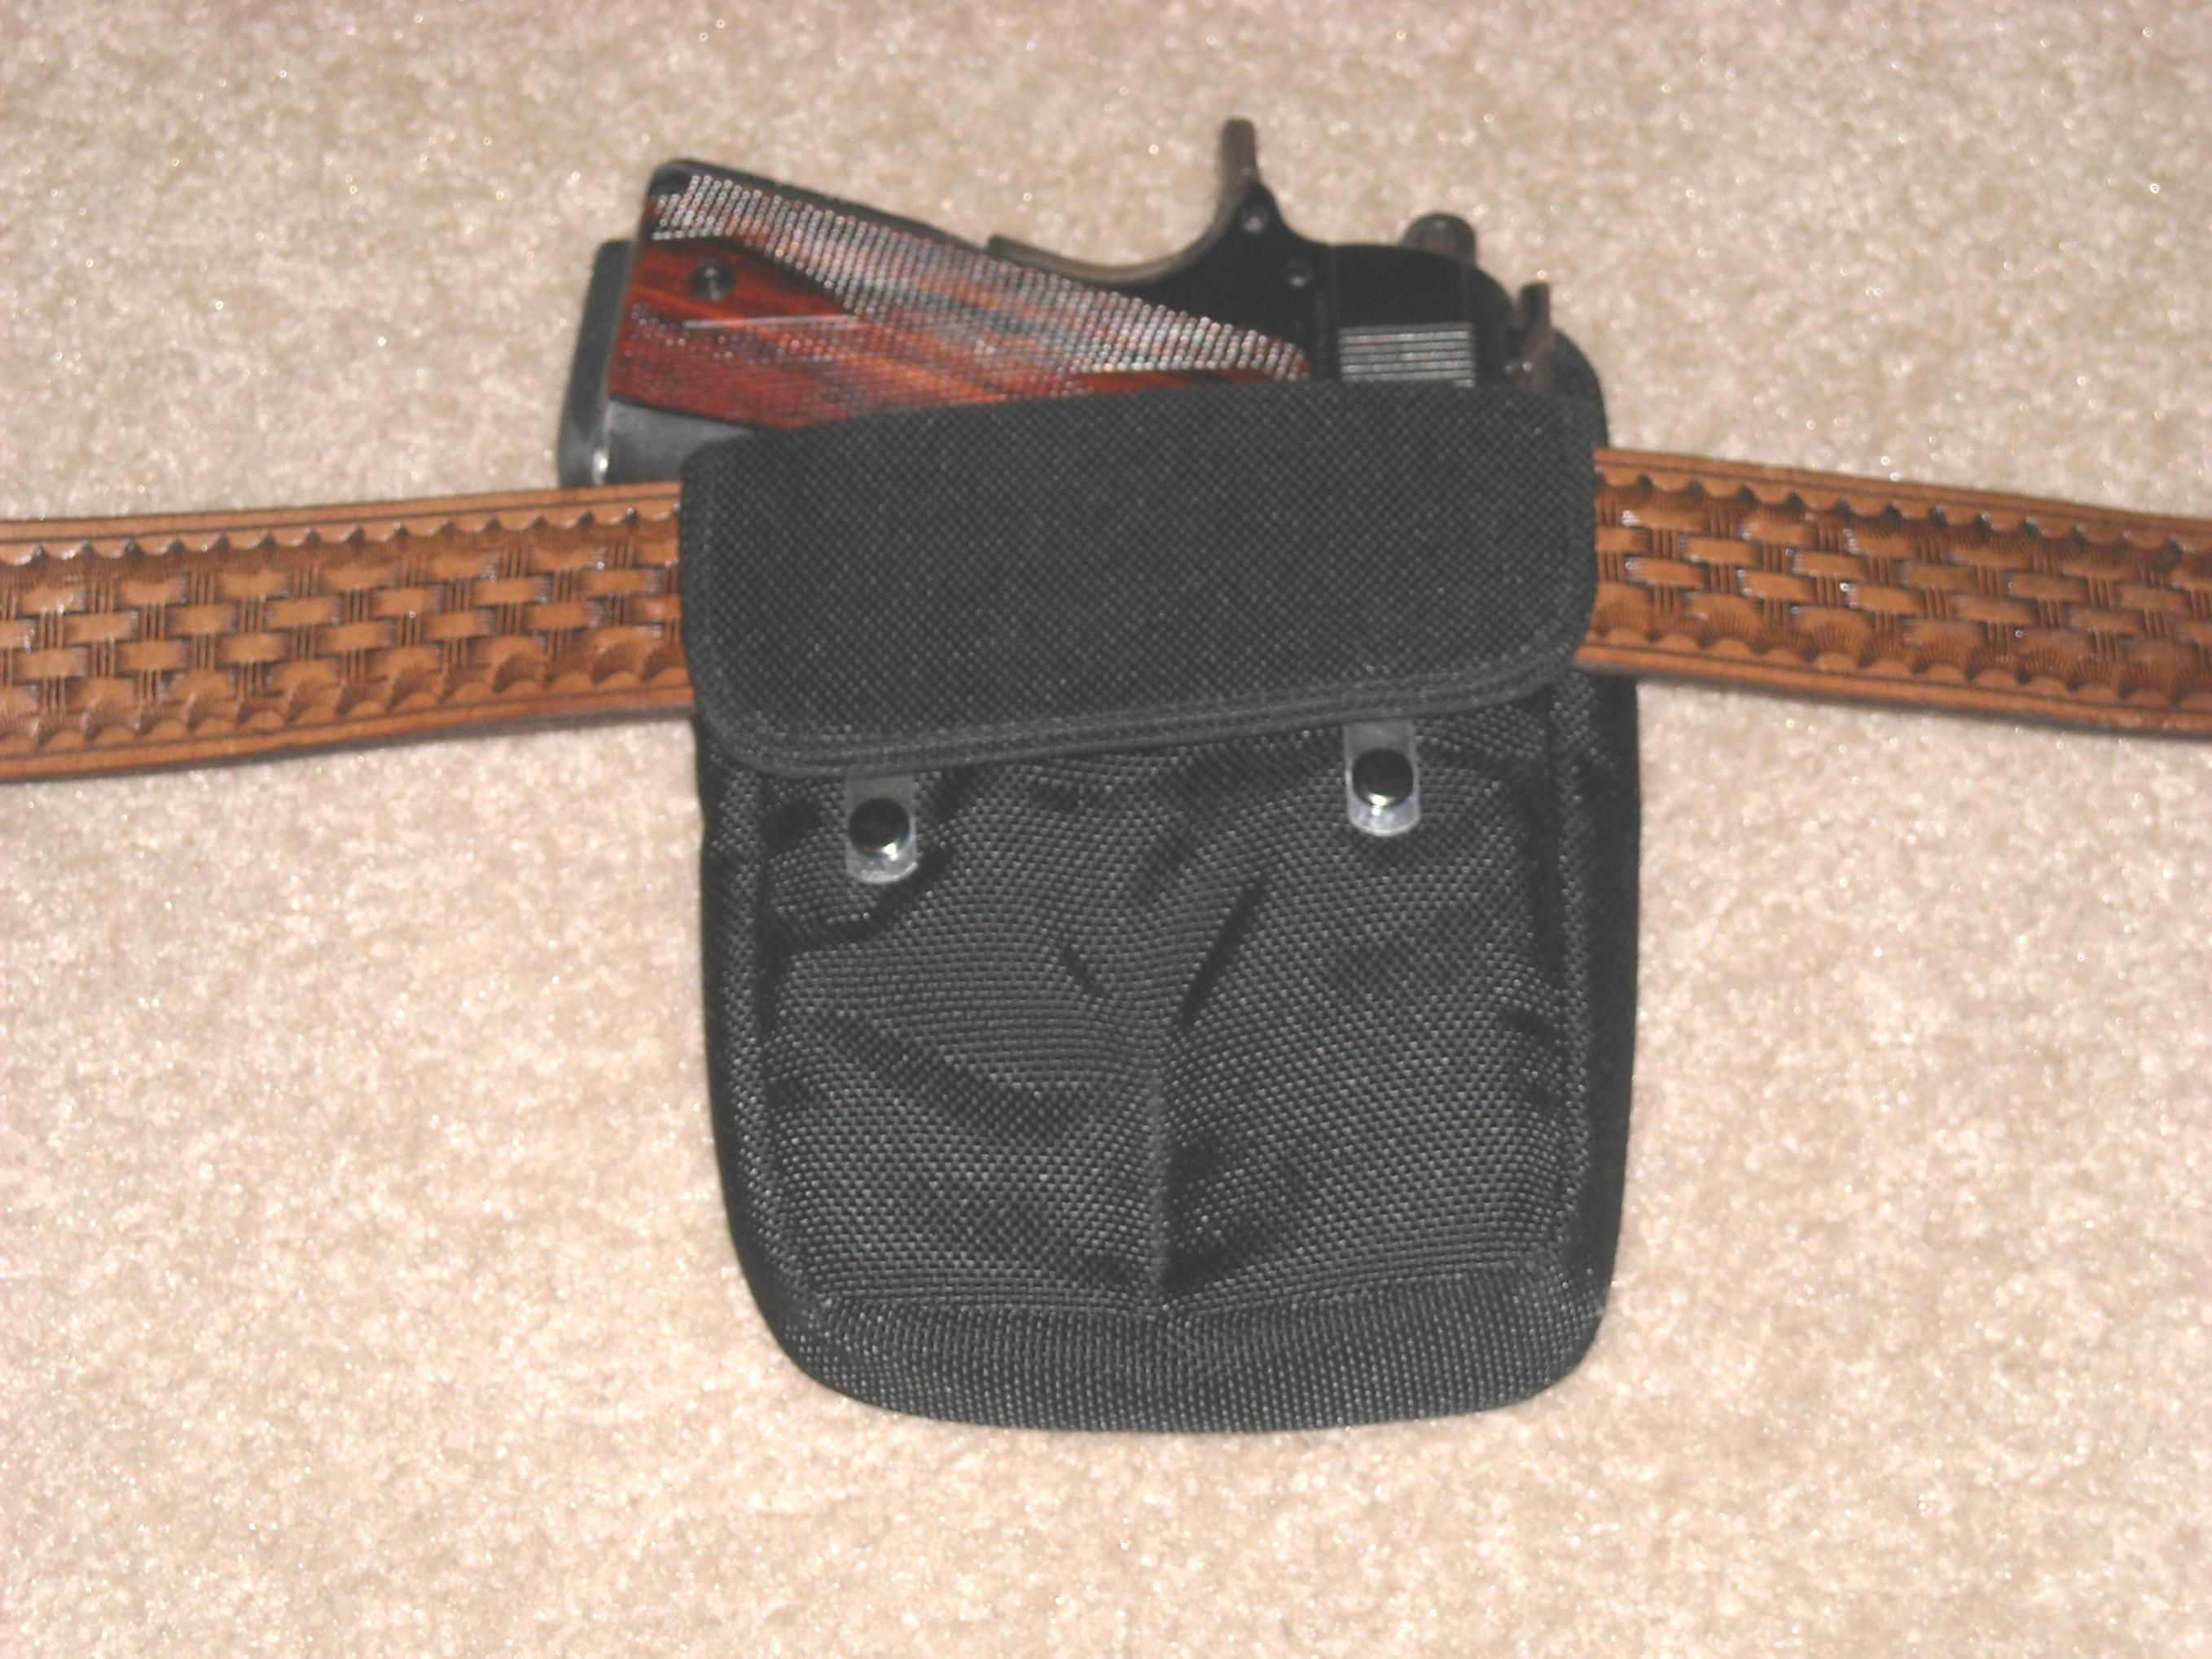 Handy Unusual Holster-square-holster-002.jpg